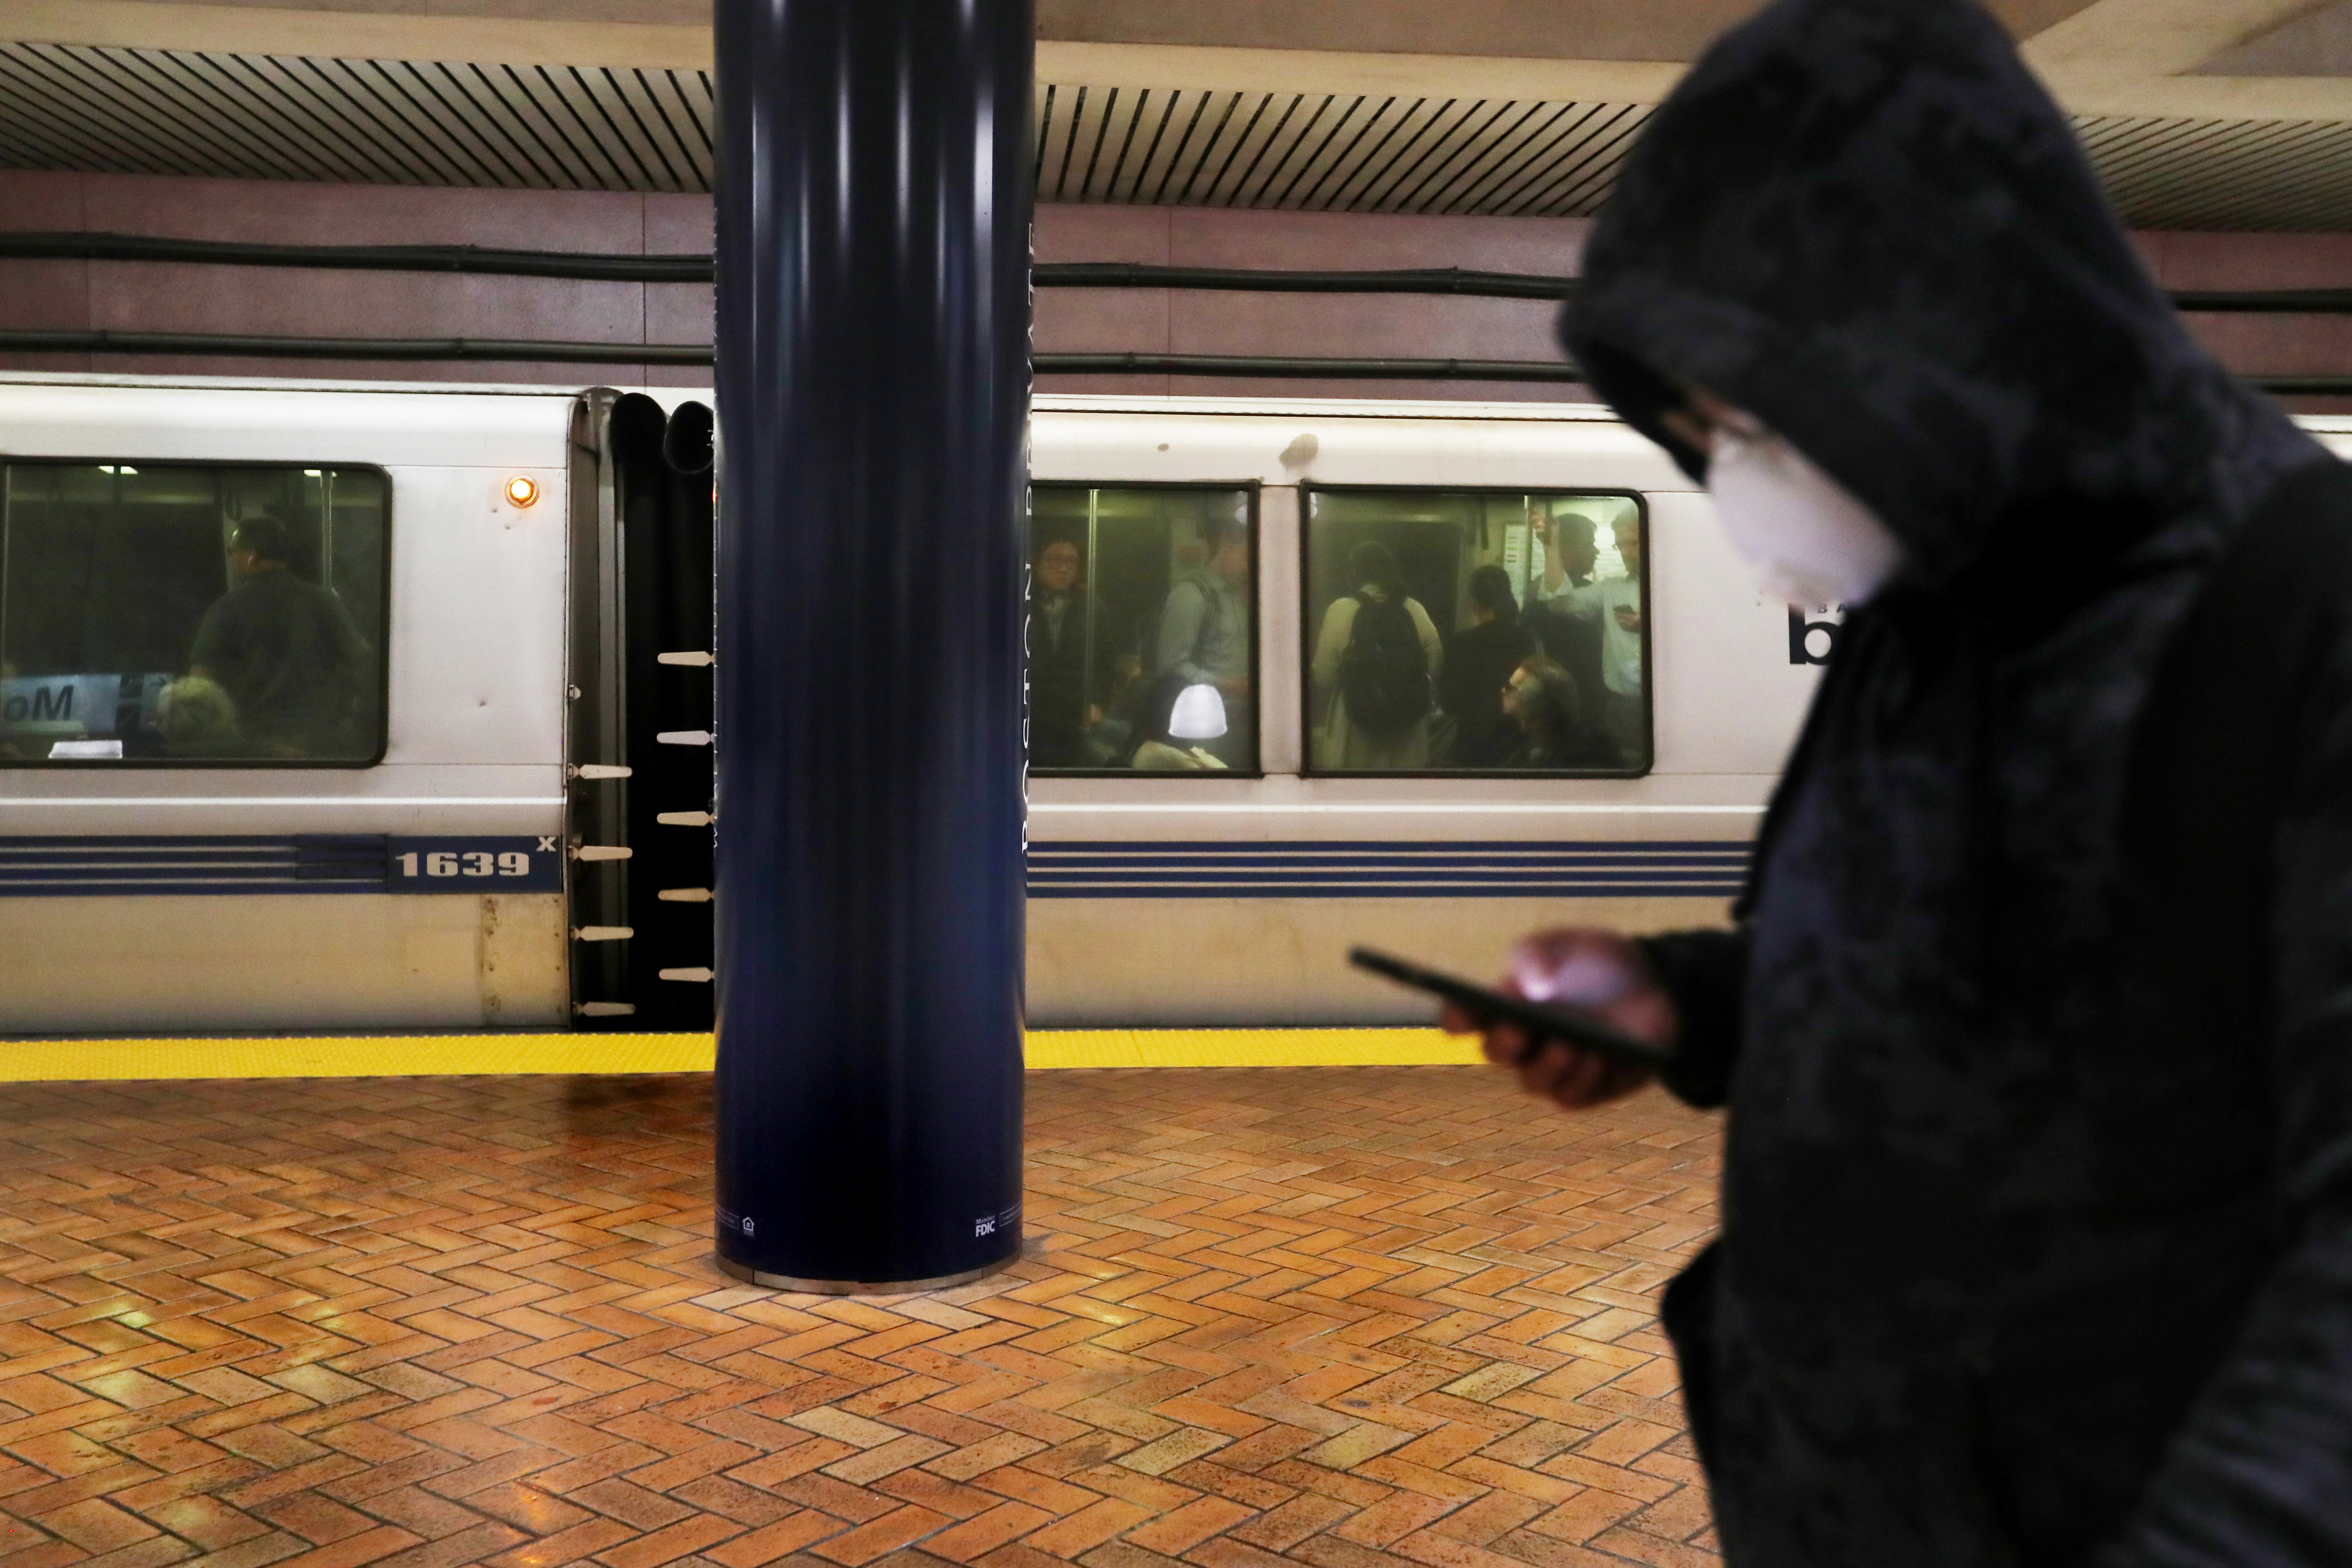 A man wearing a dark hoodie and a white mask over his nose and mouth, while standing on a train platform with a blue and gray train behind him.